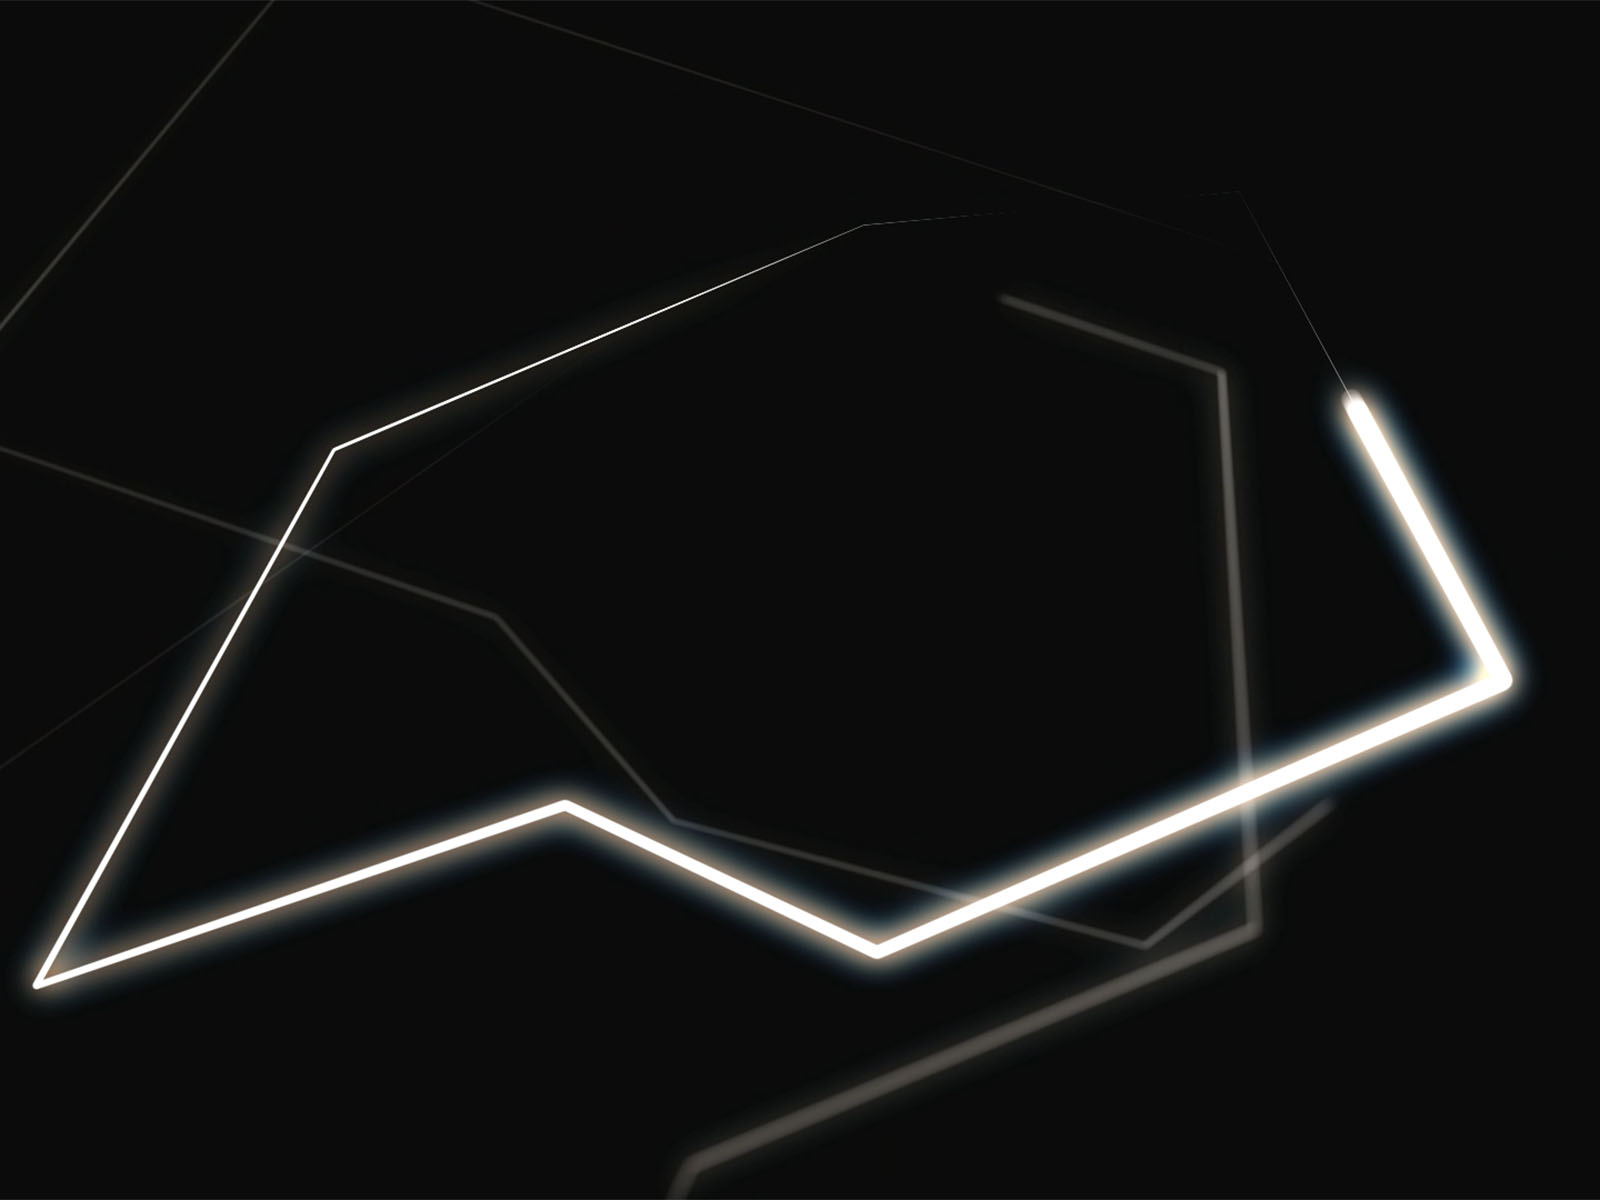 White Lines Abstract Backgrounds